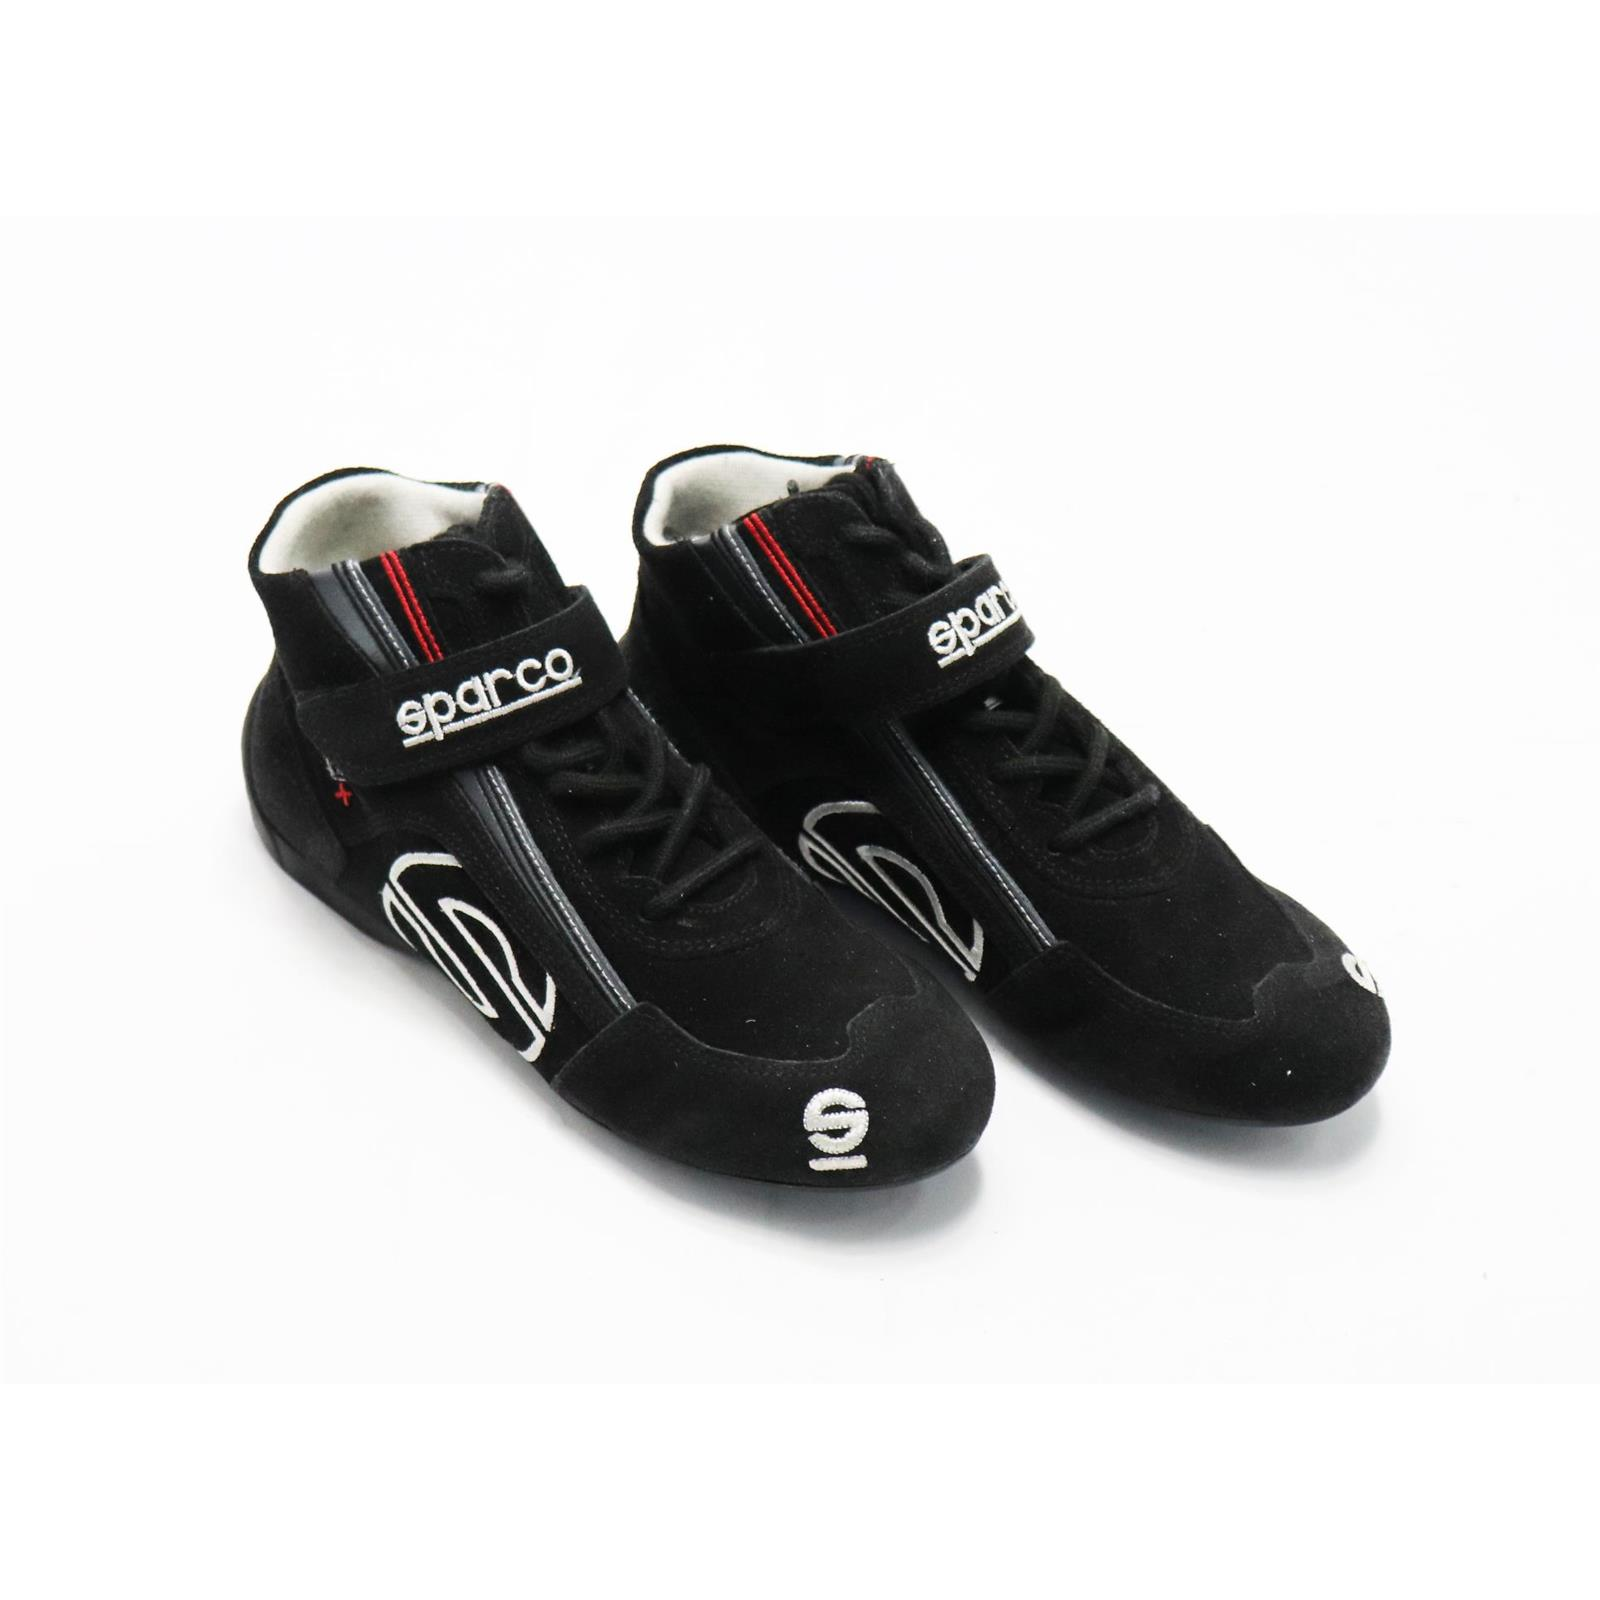 Sparco Speed SL 3 Racing Shoes Size 37